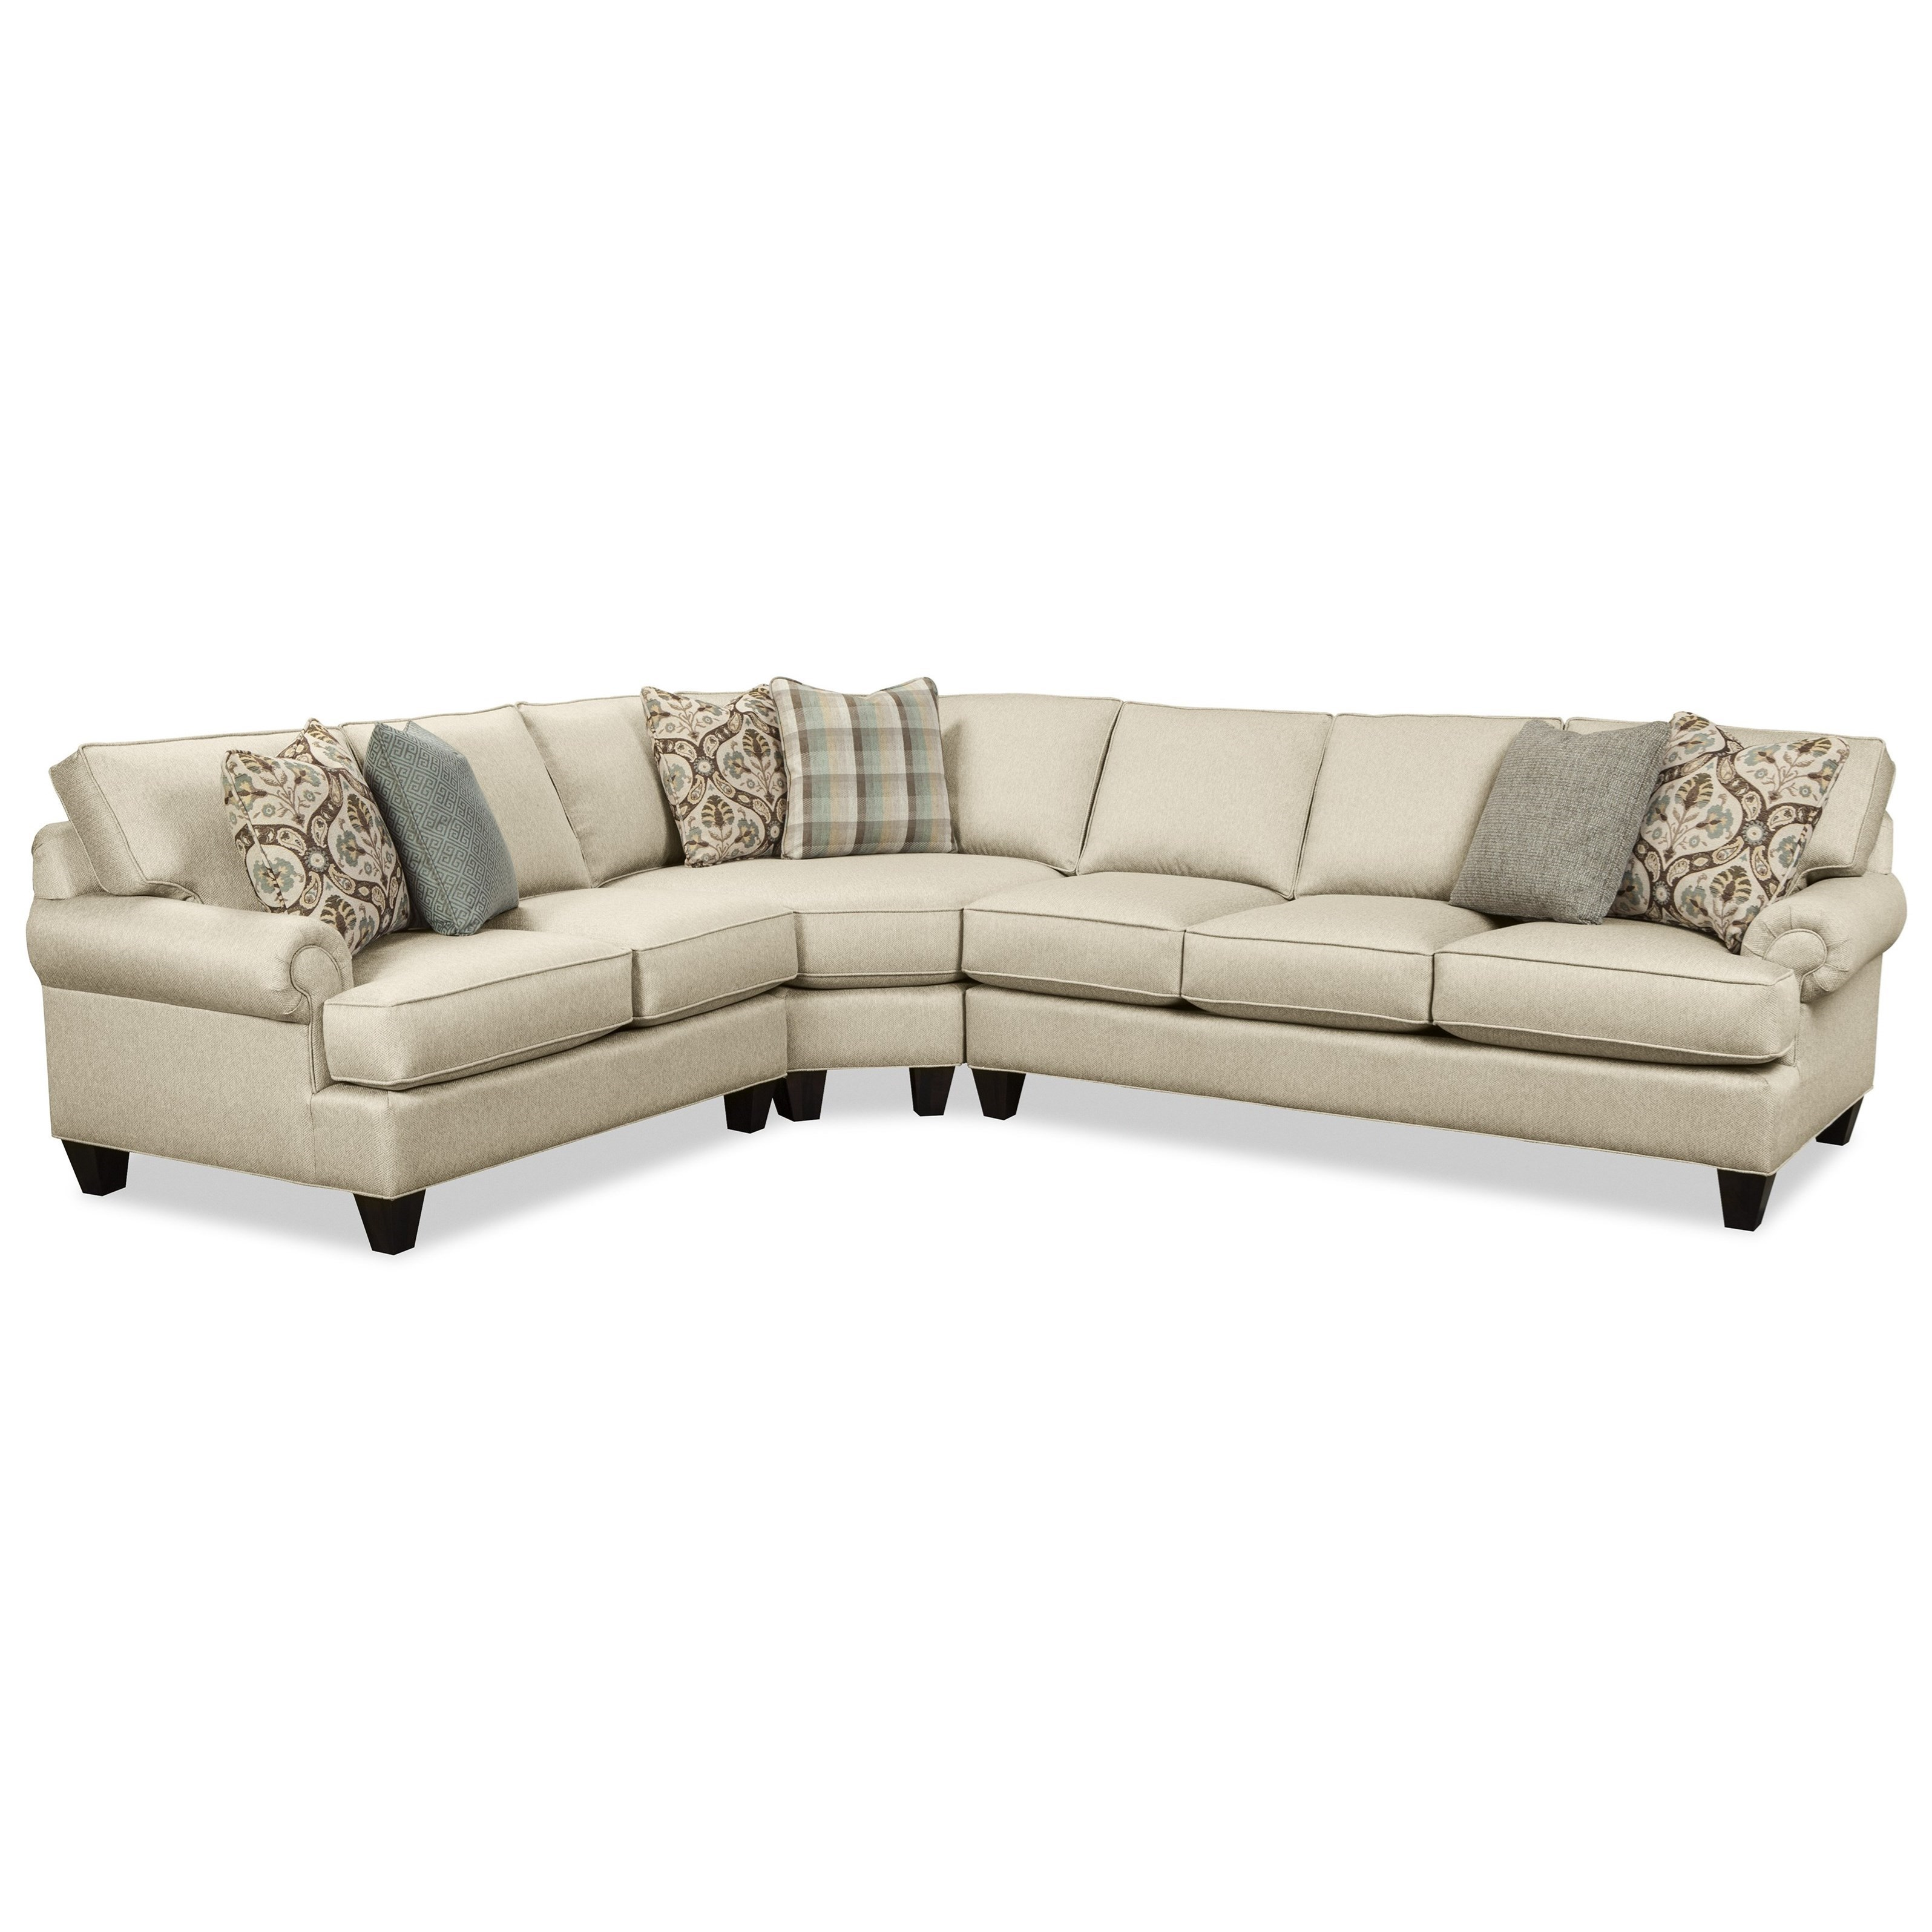 Craftmaster C9 Custom Collection3 Pc Sectional Sofa ...